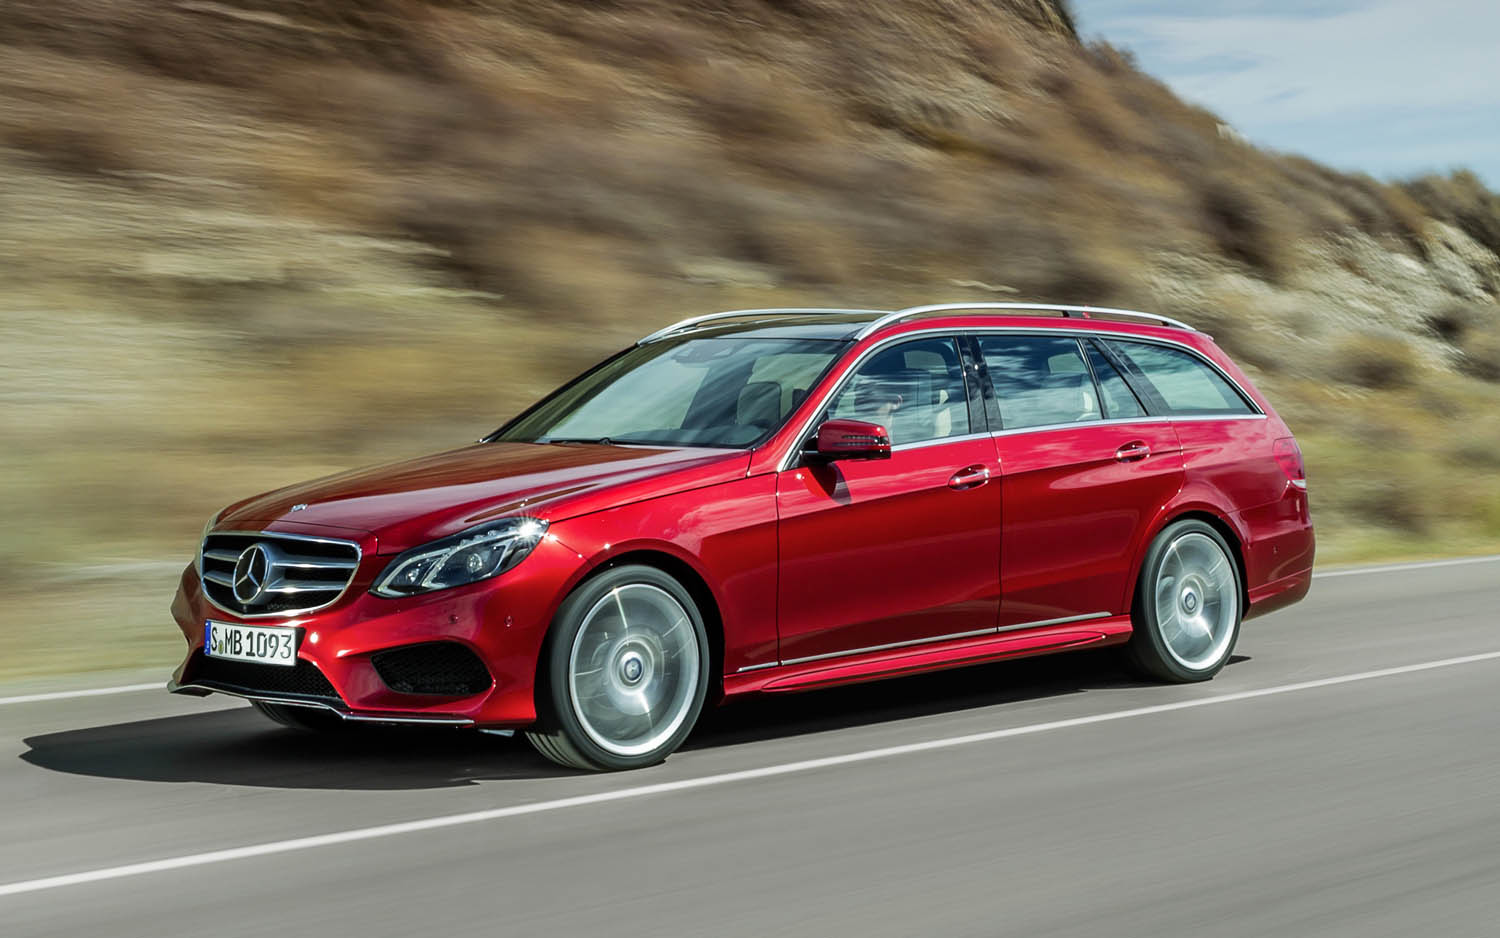 Mercedes benz usa selling more luxury cars than ever in history 2014 mercedes benz e class wagon altavistaventures Gallery